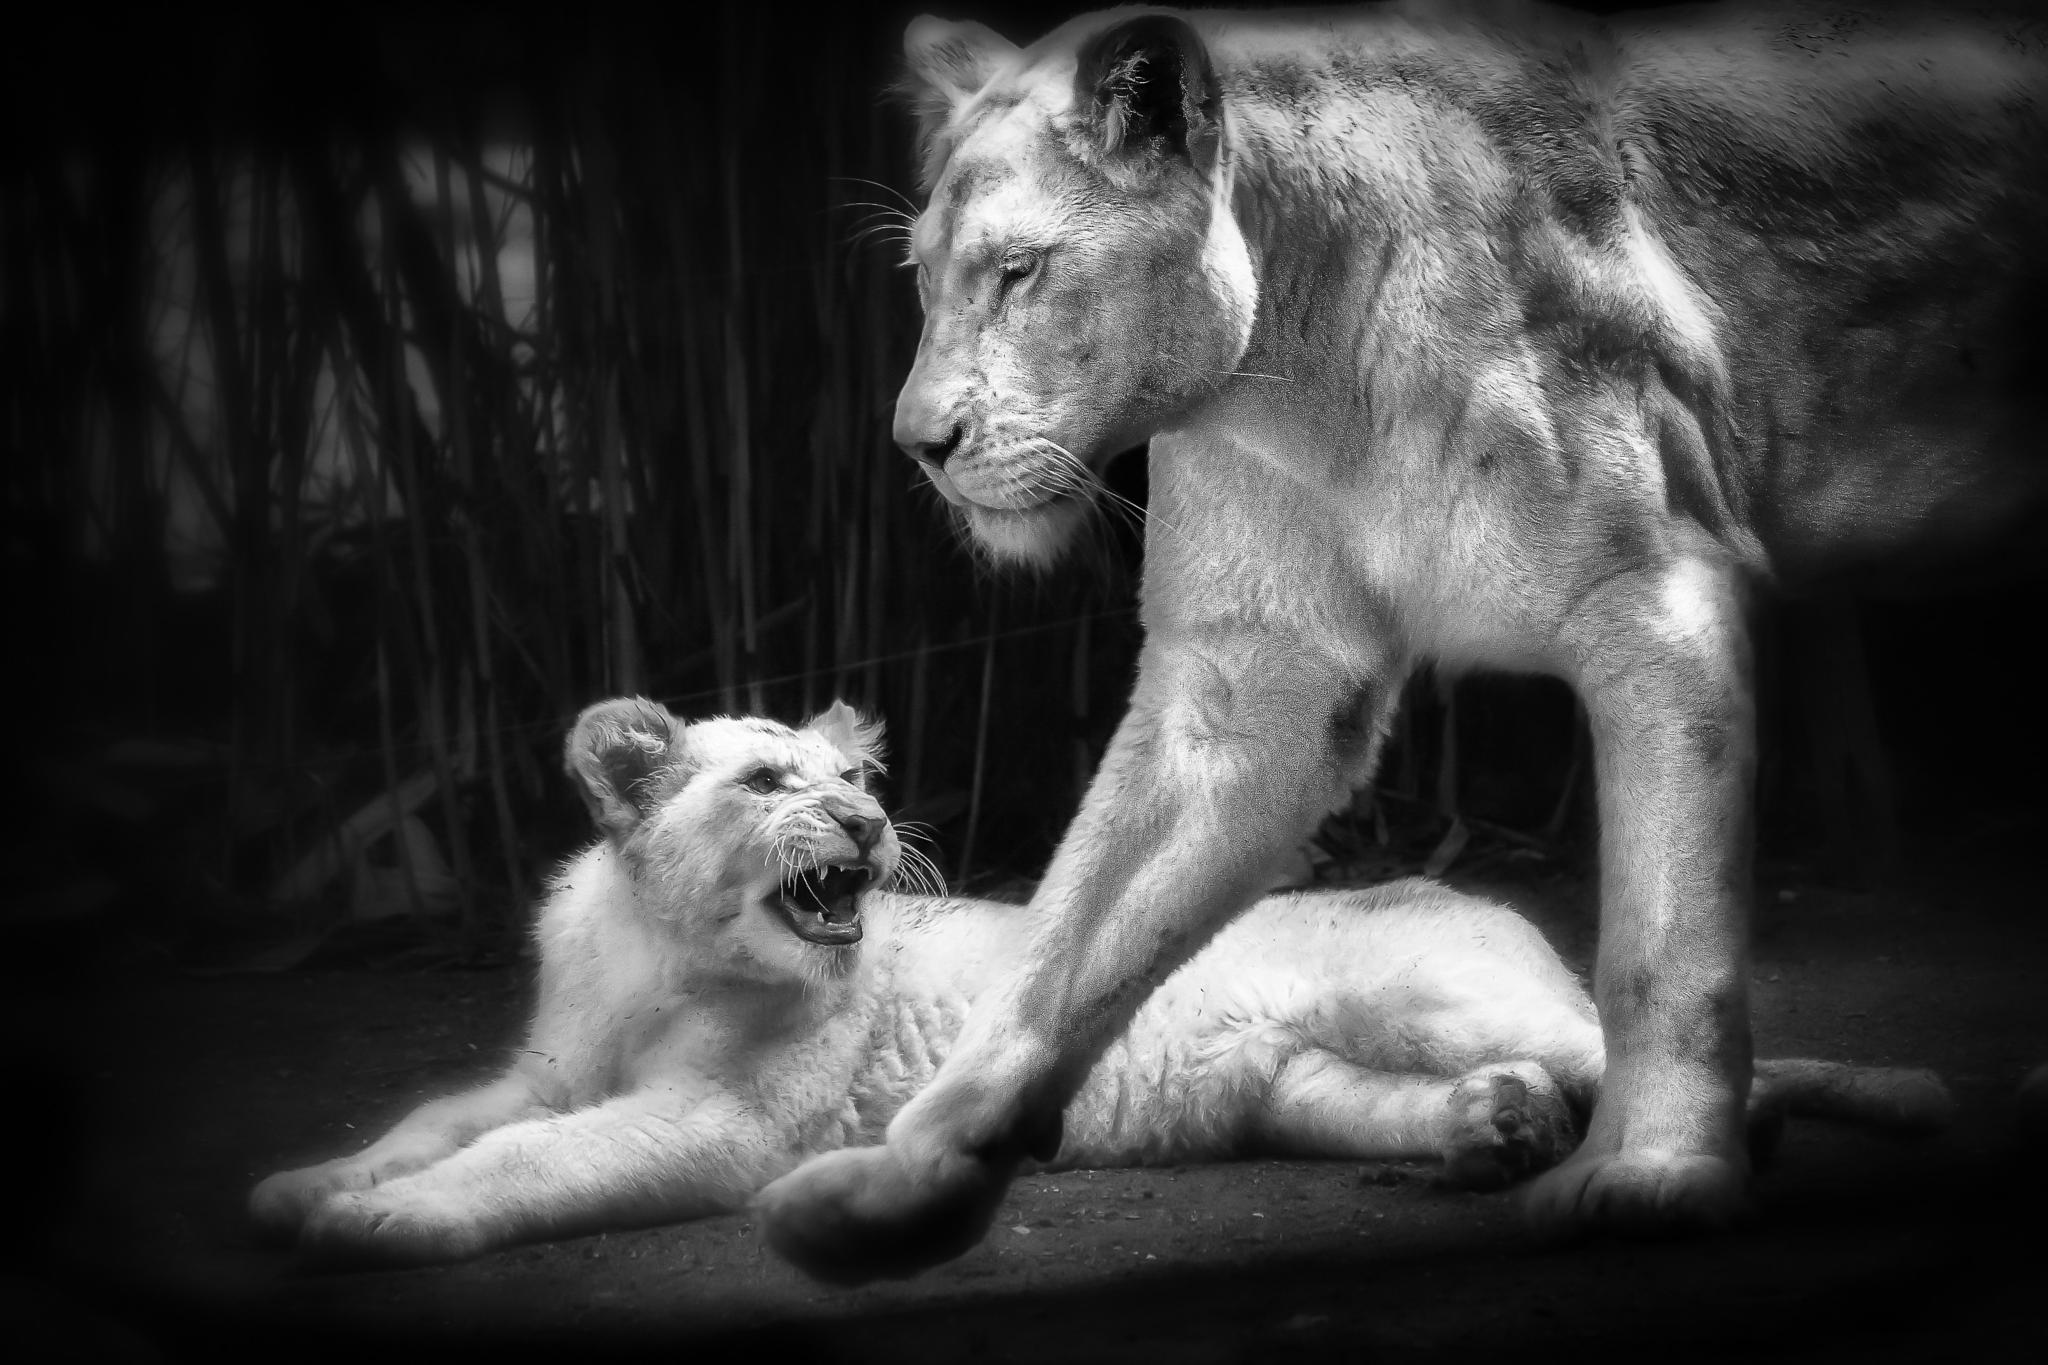 Lioness and cub by patrickbouquet37